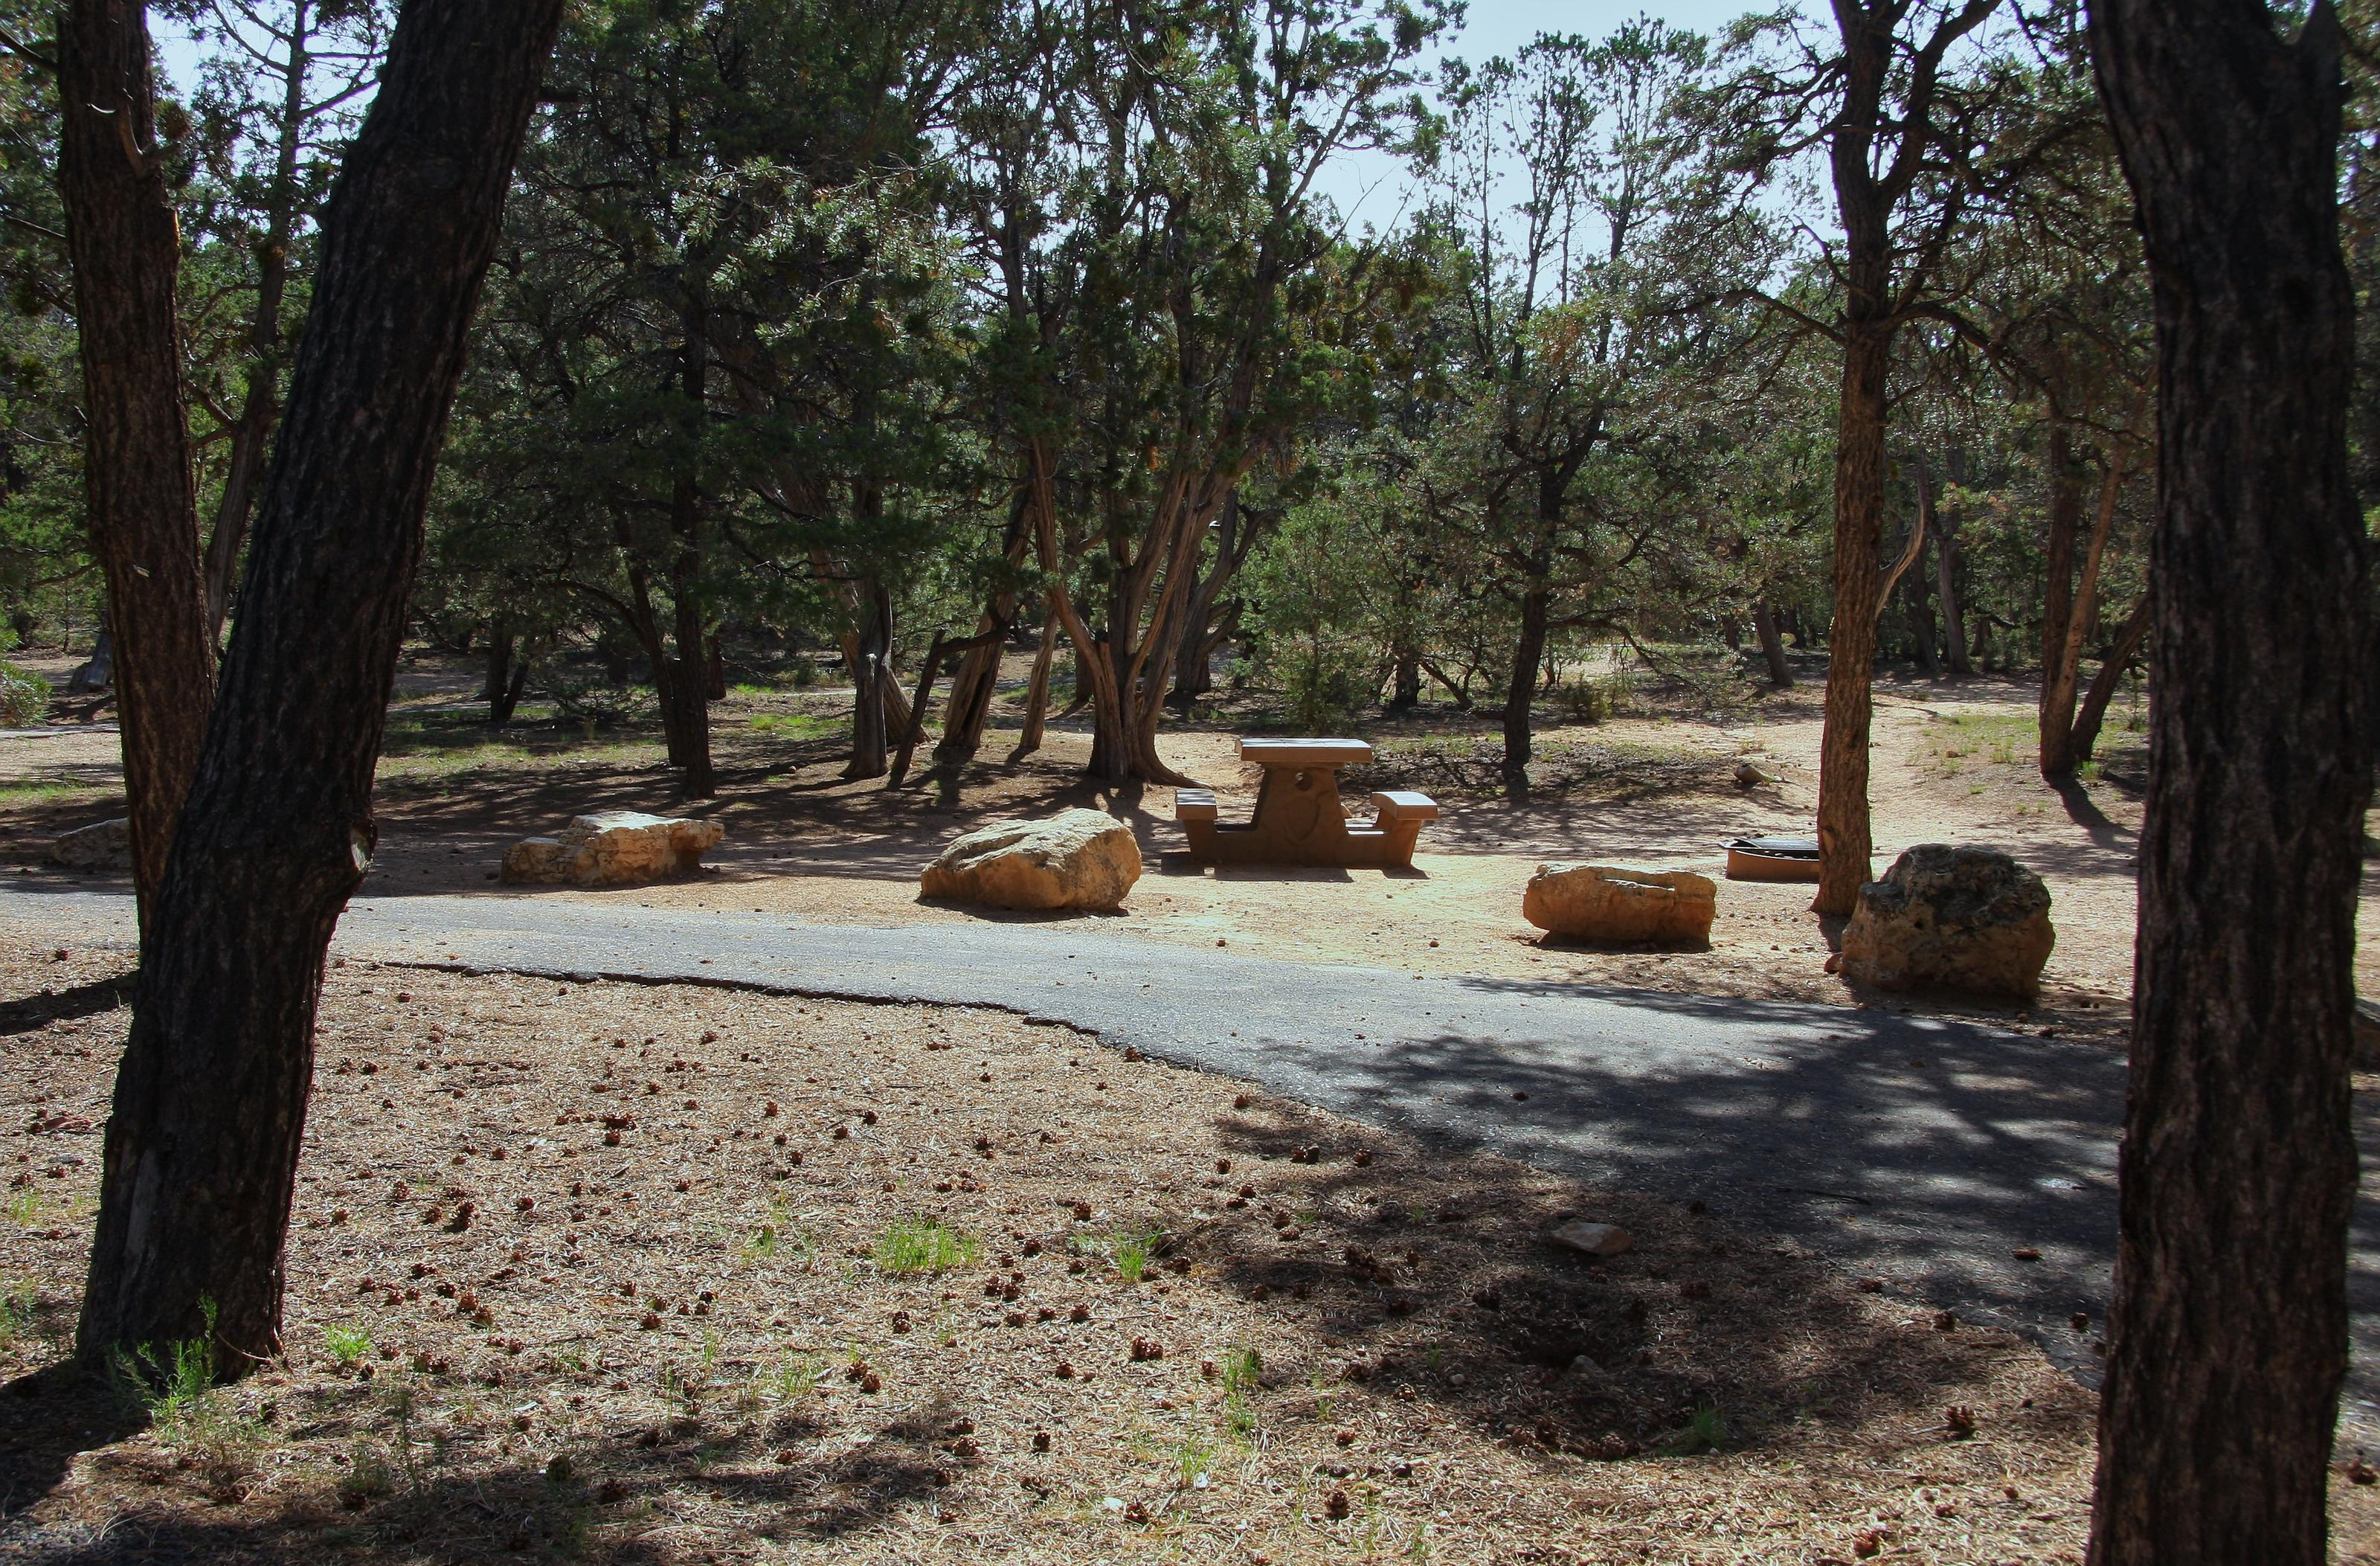 Picnic table, fire pit, and parking spot, Mather CampgroundPicnic table, fire pit, and parking spot for Oak Loop 206, Mather Campground